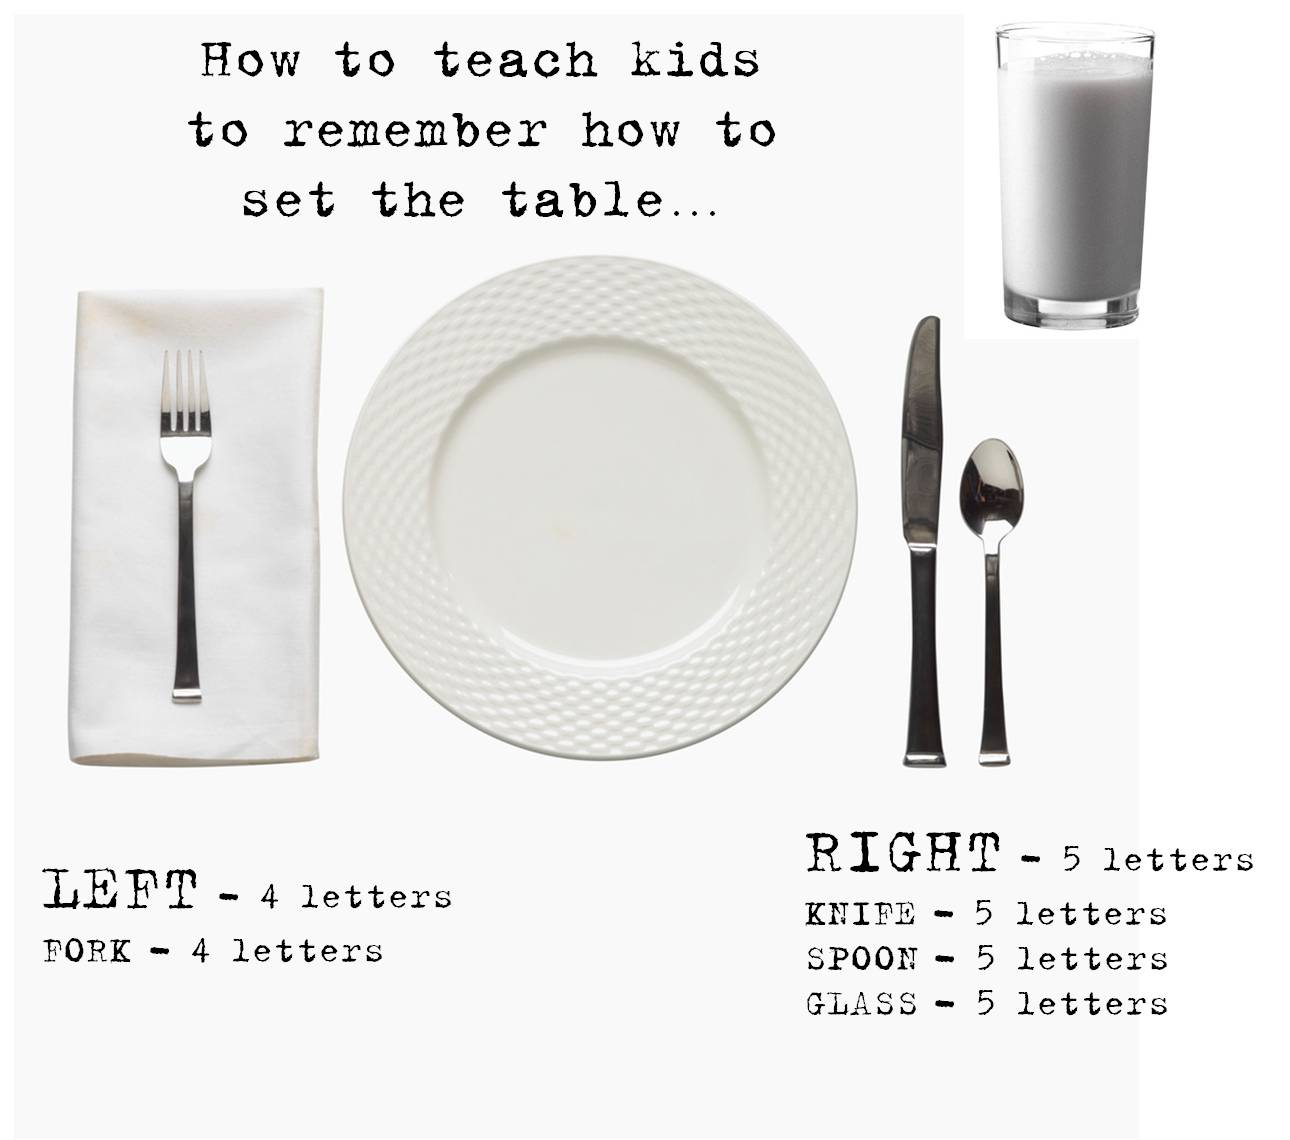 Strong Armor: Teaching kids how to set the table